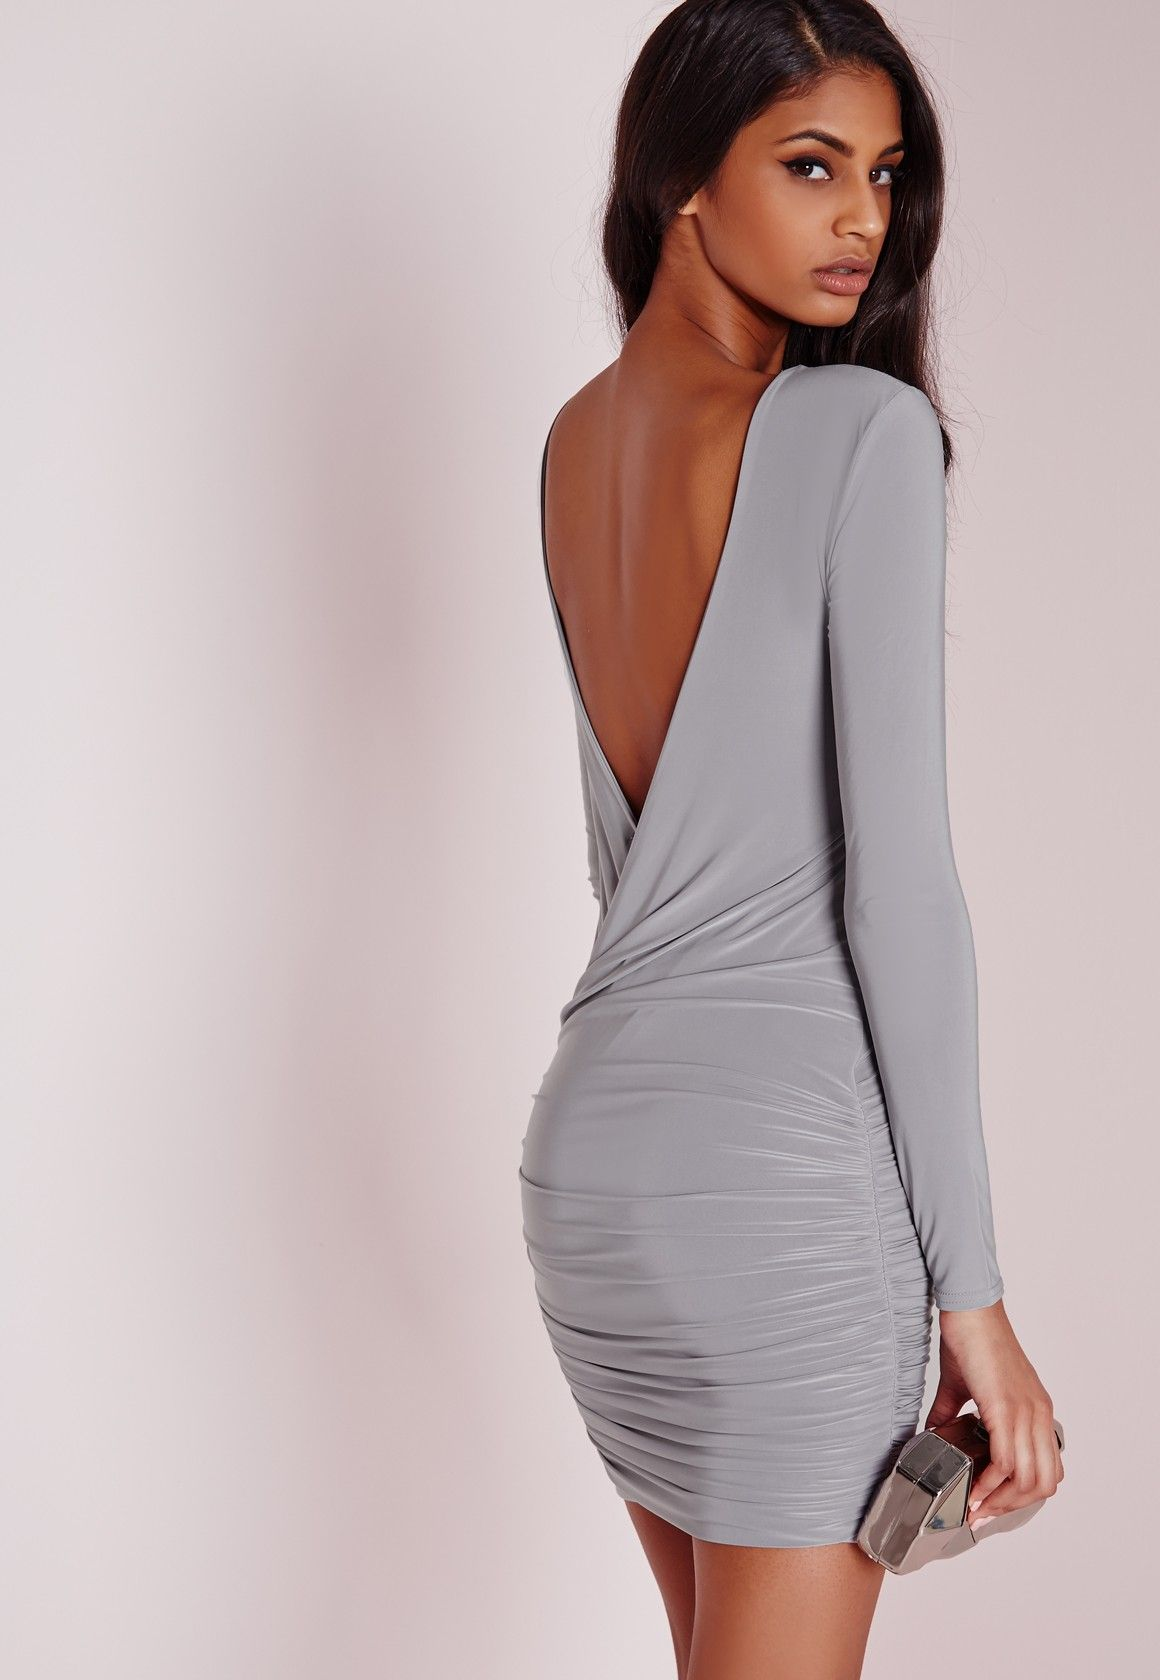 0a6de1482b Missguided - Slinky drape back ruched bodycon dress Ordered this dress and  I can t wait to receive it